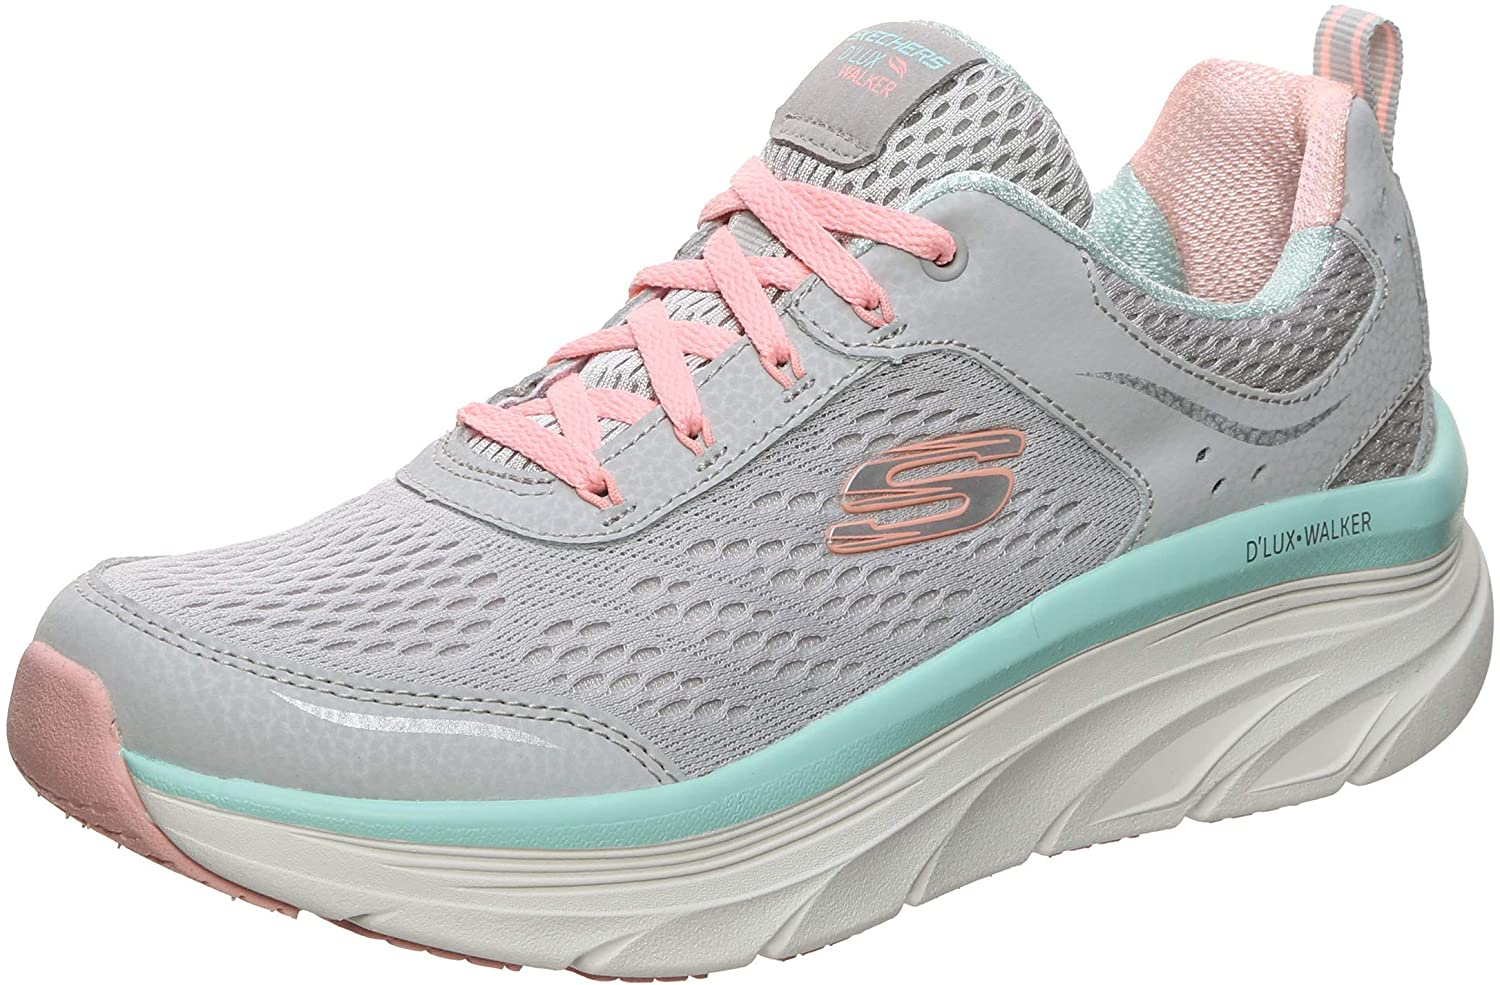 Skechers Women's D'lux Walker-Infinite Motion Sneaker